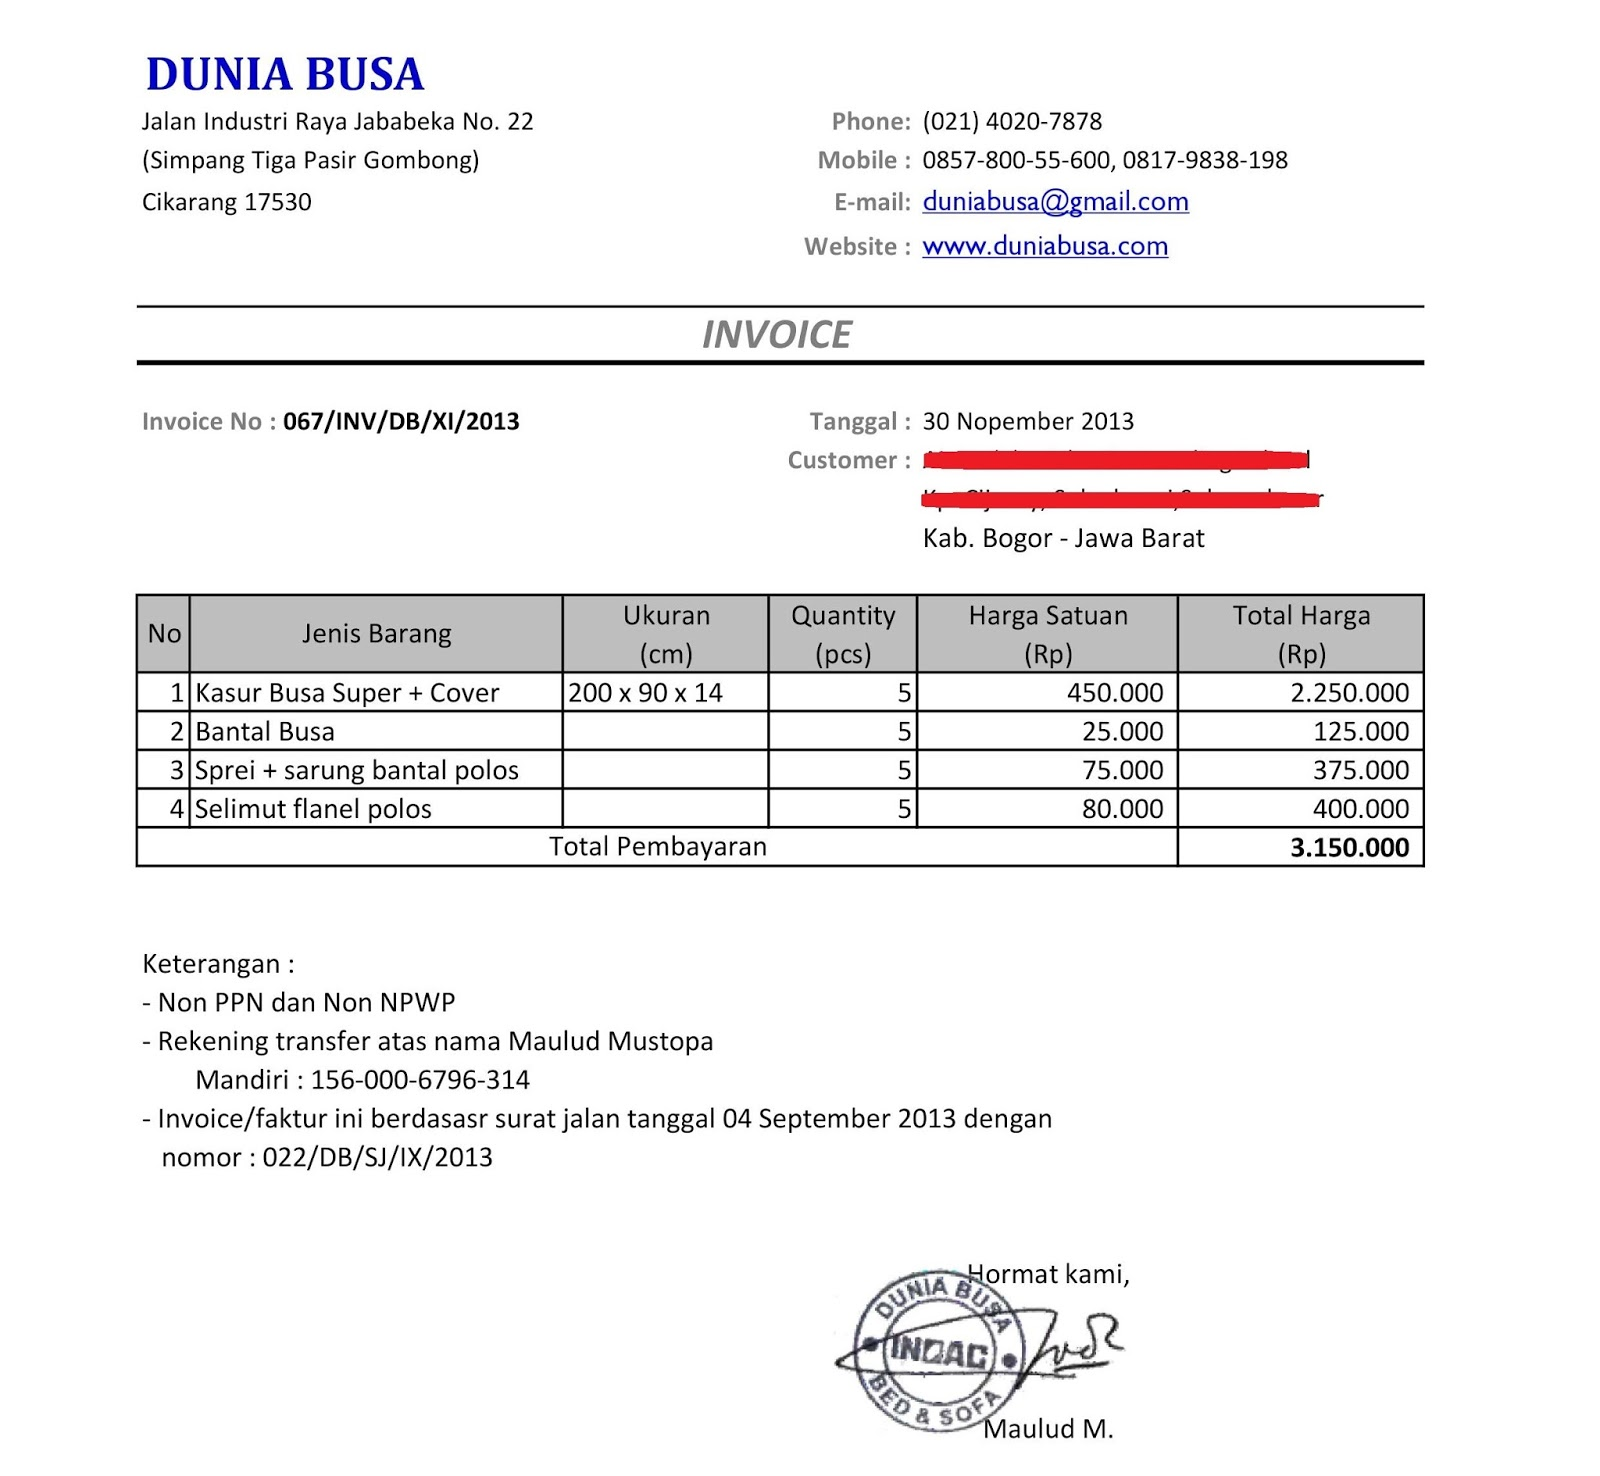 Usdgus  Scenic Free Invoice Online  Create Invoice Online  Invoice Template  With Excellent Contoh Format Invoice Atau Surat Tagihan  Brankas Arsip  Free Invoice Online With Attractive Free Printable Invoice Forms Also Invoice And Receipt In Addition Legal Invoice Template And Invoice Cost As Well As Fusion Invoice Additionally Order Invoice From Sklepco With Usdgus  Excellent Free Invoice Online  Create Invoice Online  Invoice Template  With Attractive Contoh Format Invoice Atau Surat Tagihan  Brankas Arsip  Free Invoice Online And Scenic Free Printable Invoice Forms Also Invoice And Receipt In Addition Legal Invoice Template From Sklepco